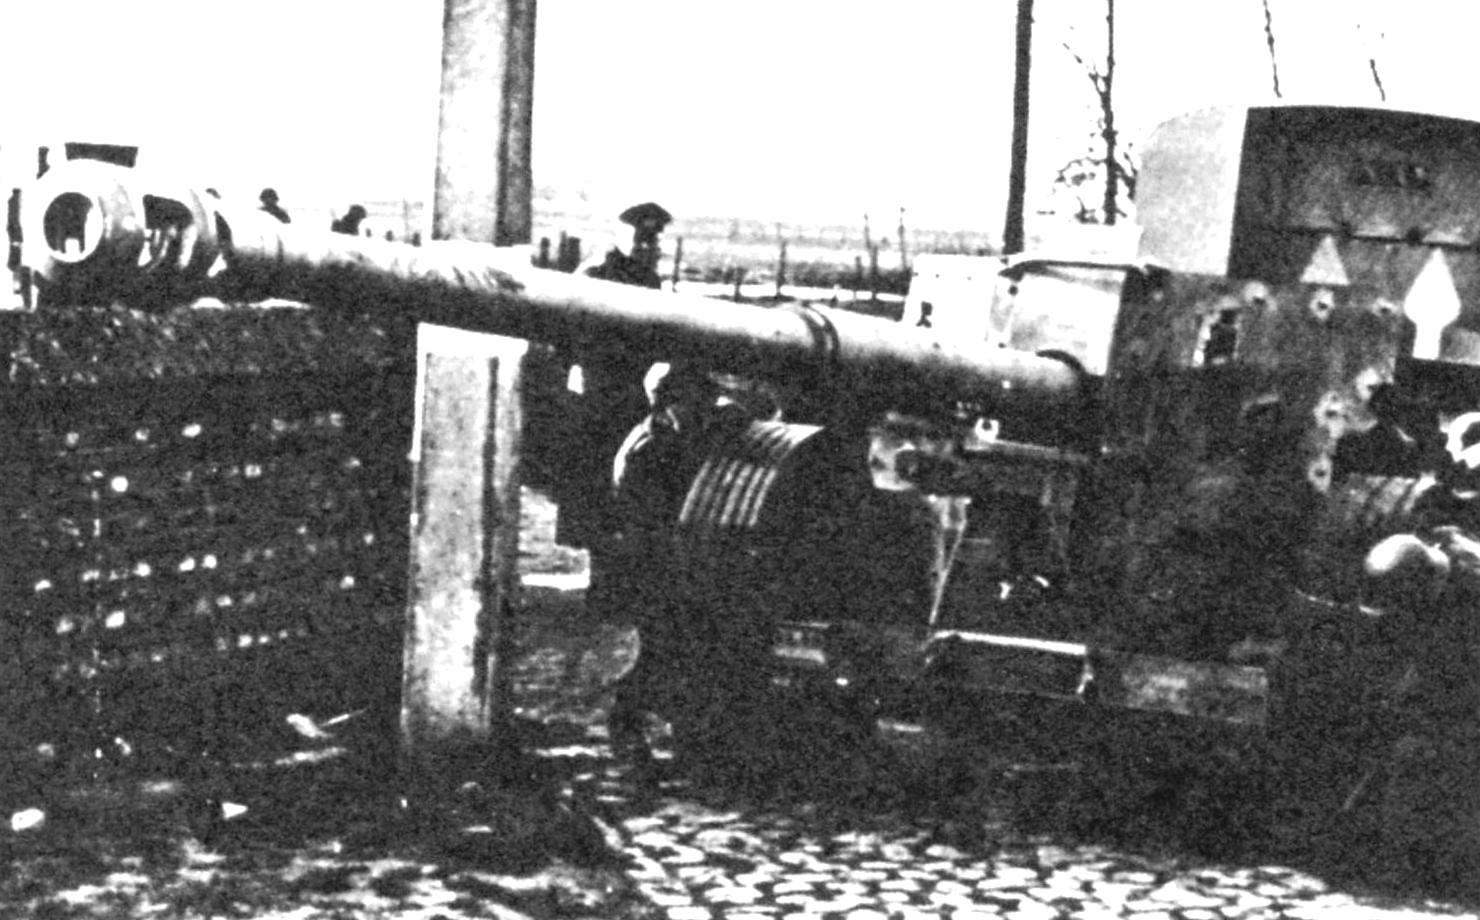 Gun Pak 43 is set by the calculation to the firing position